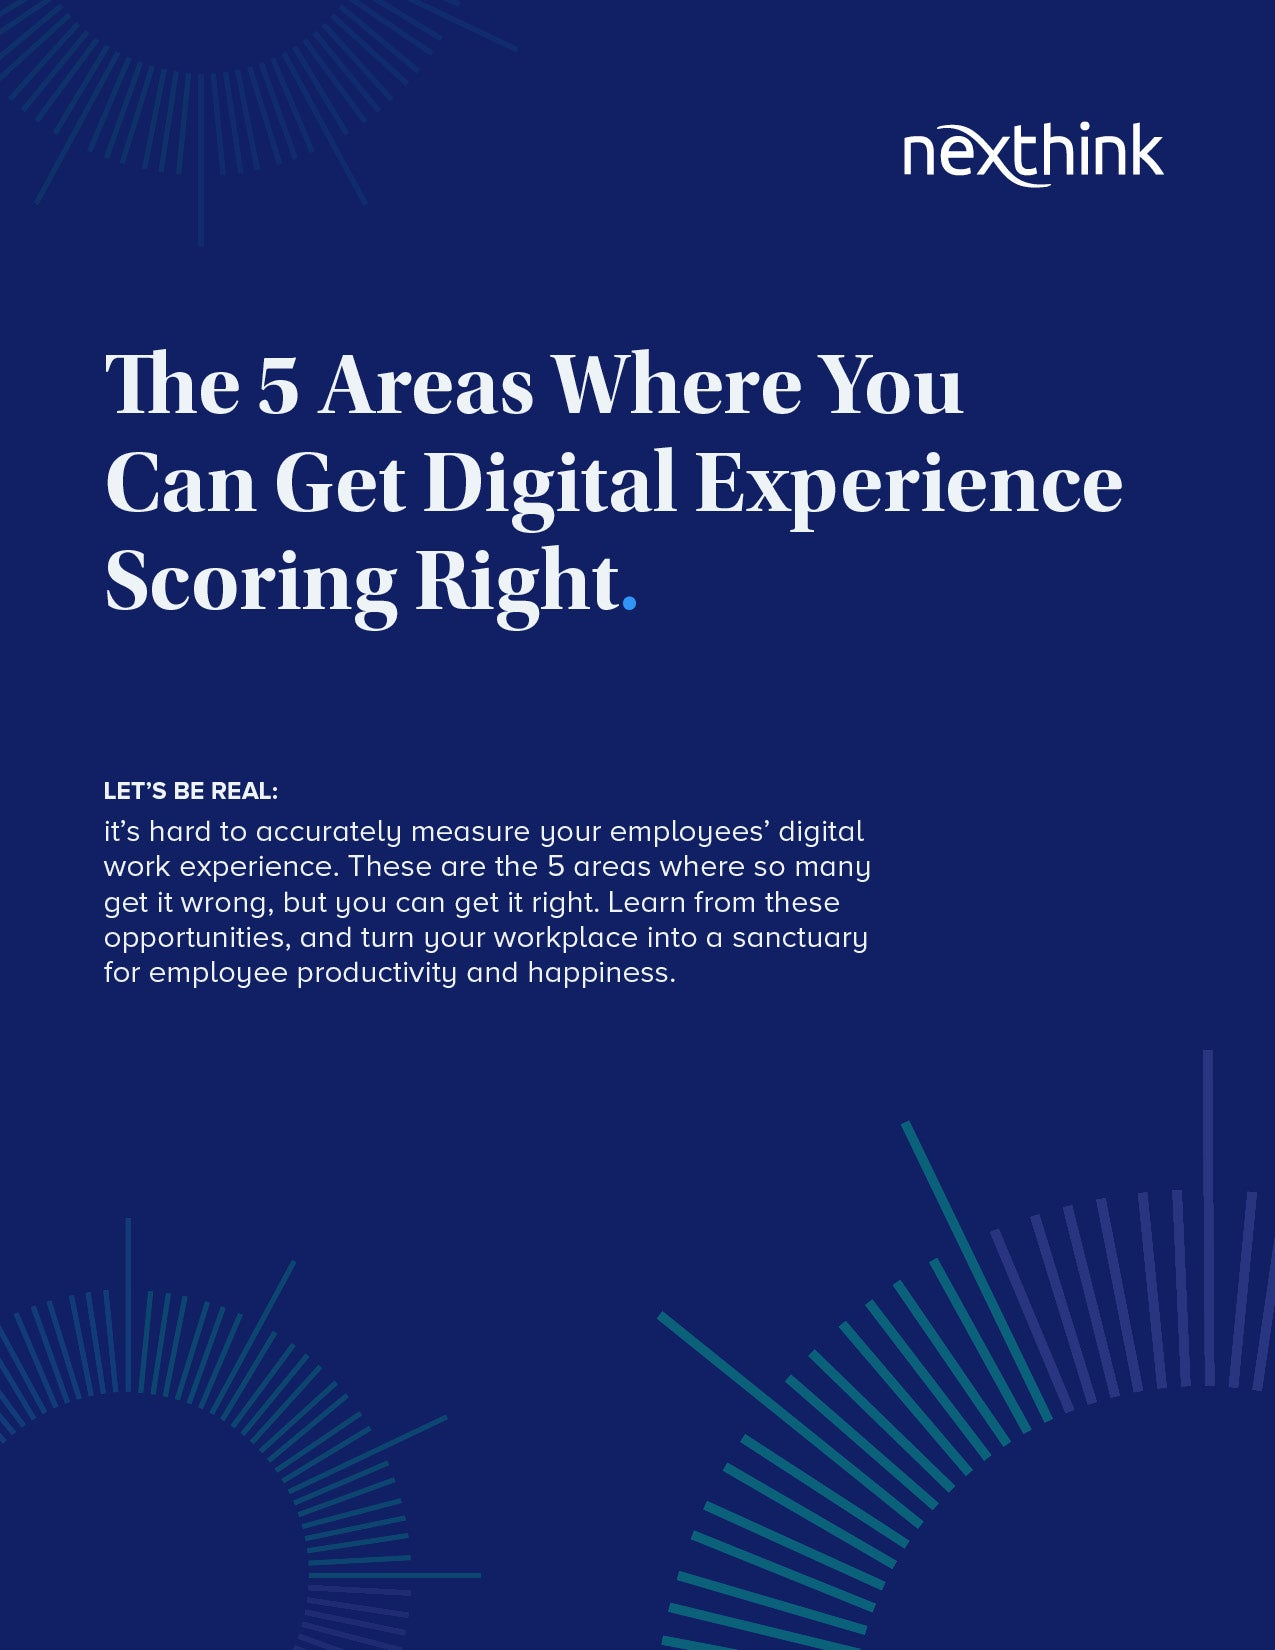 The 5 Areas Where You Can Get Digital Experience Scoring Right